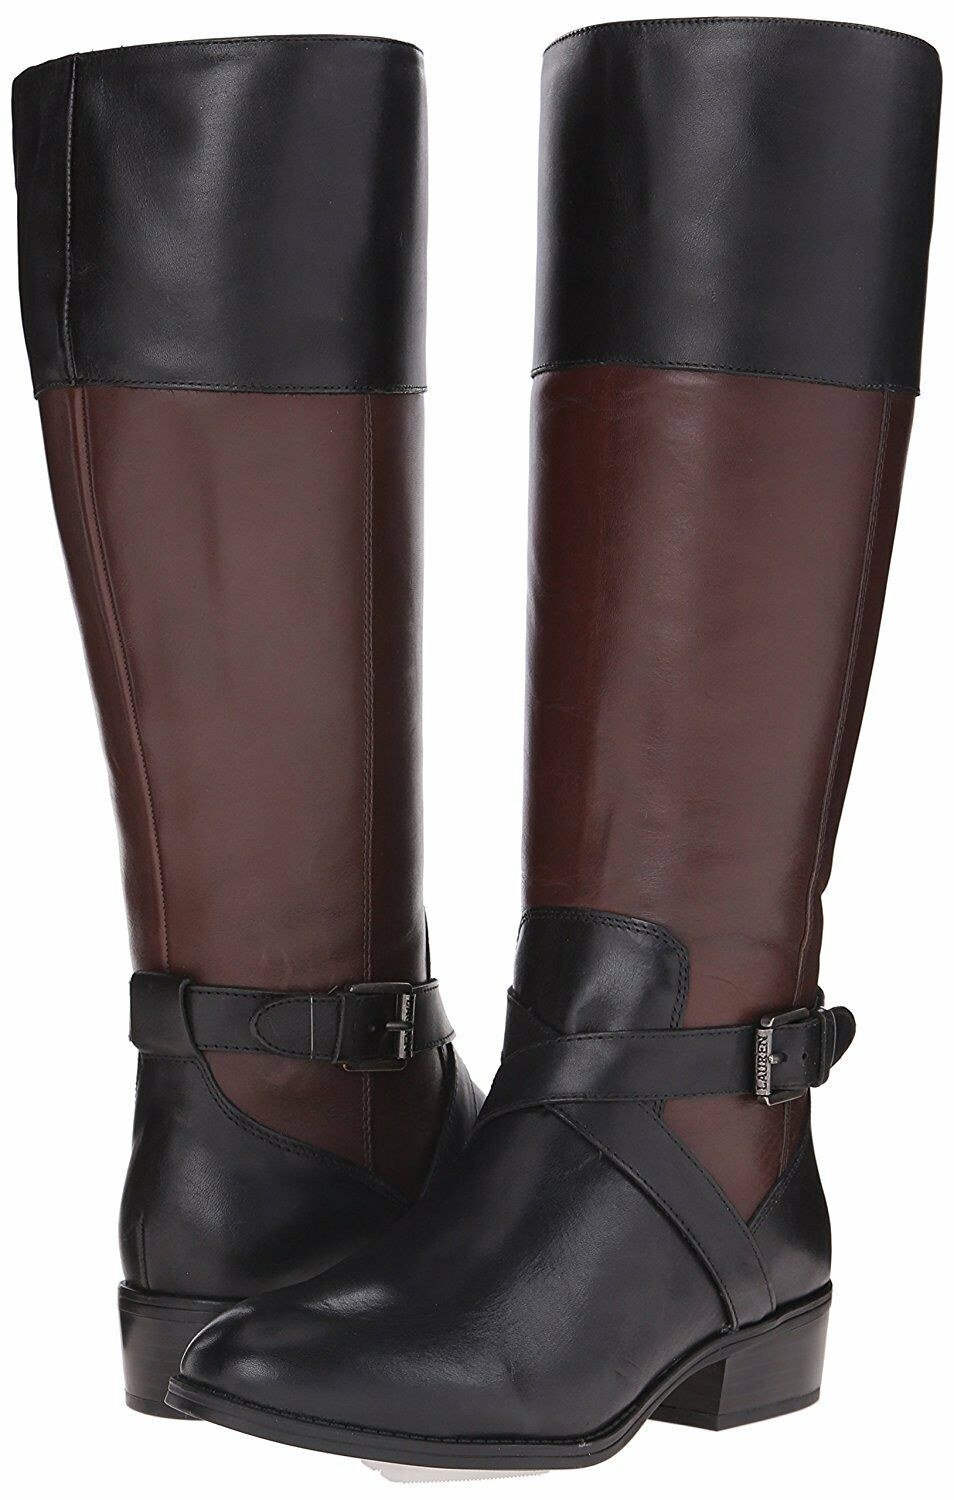 LAUREN RALPH LAUREN New Maryann Tall Black Dark Brown Leather Riding Boots 5.5